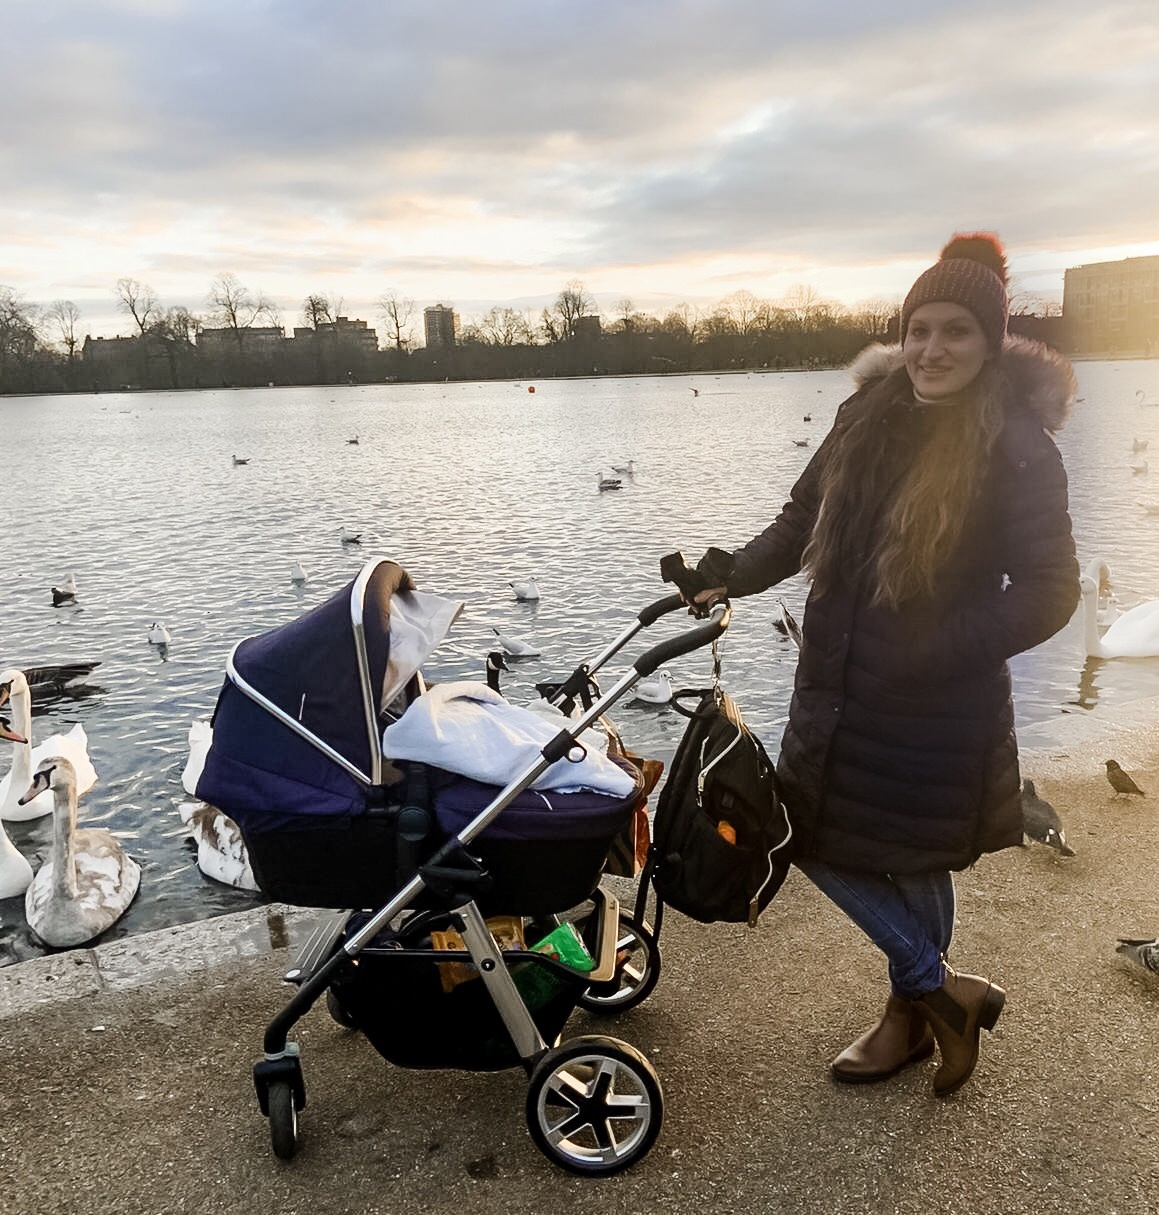 walk in park by lake with baby